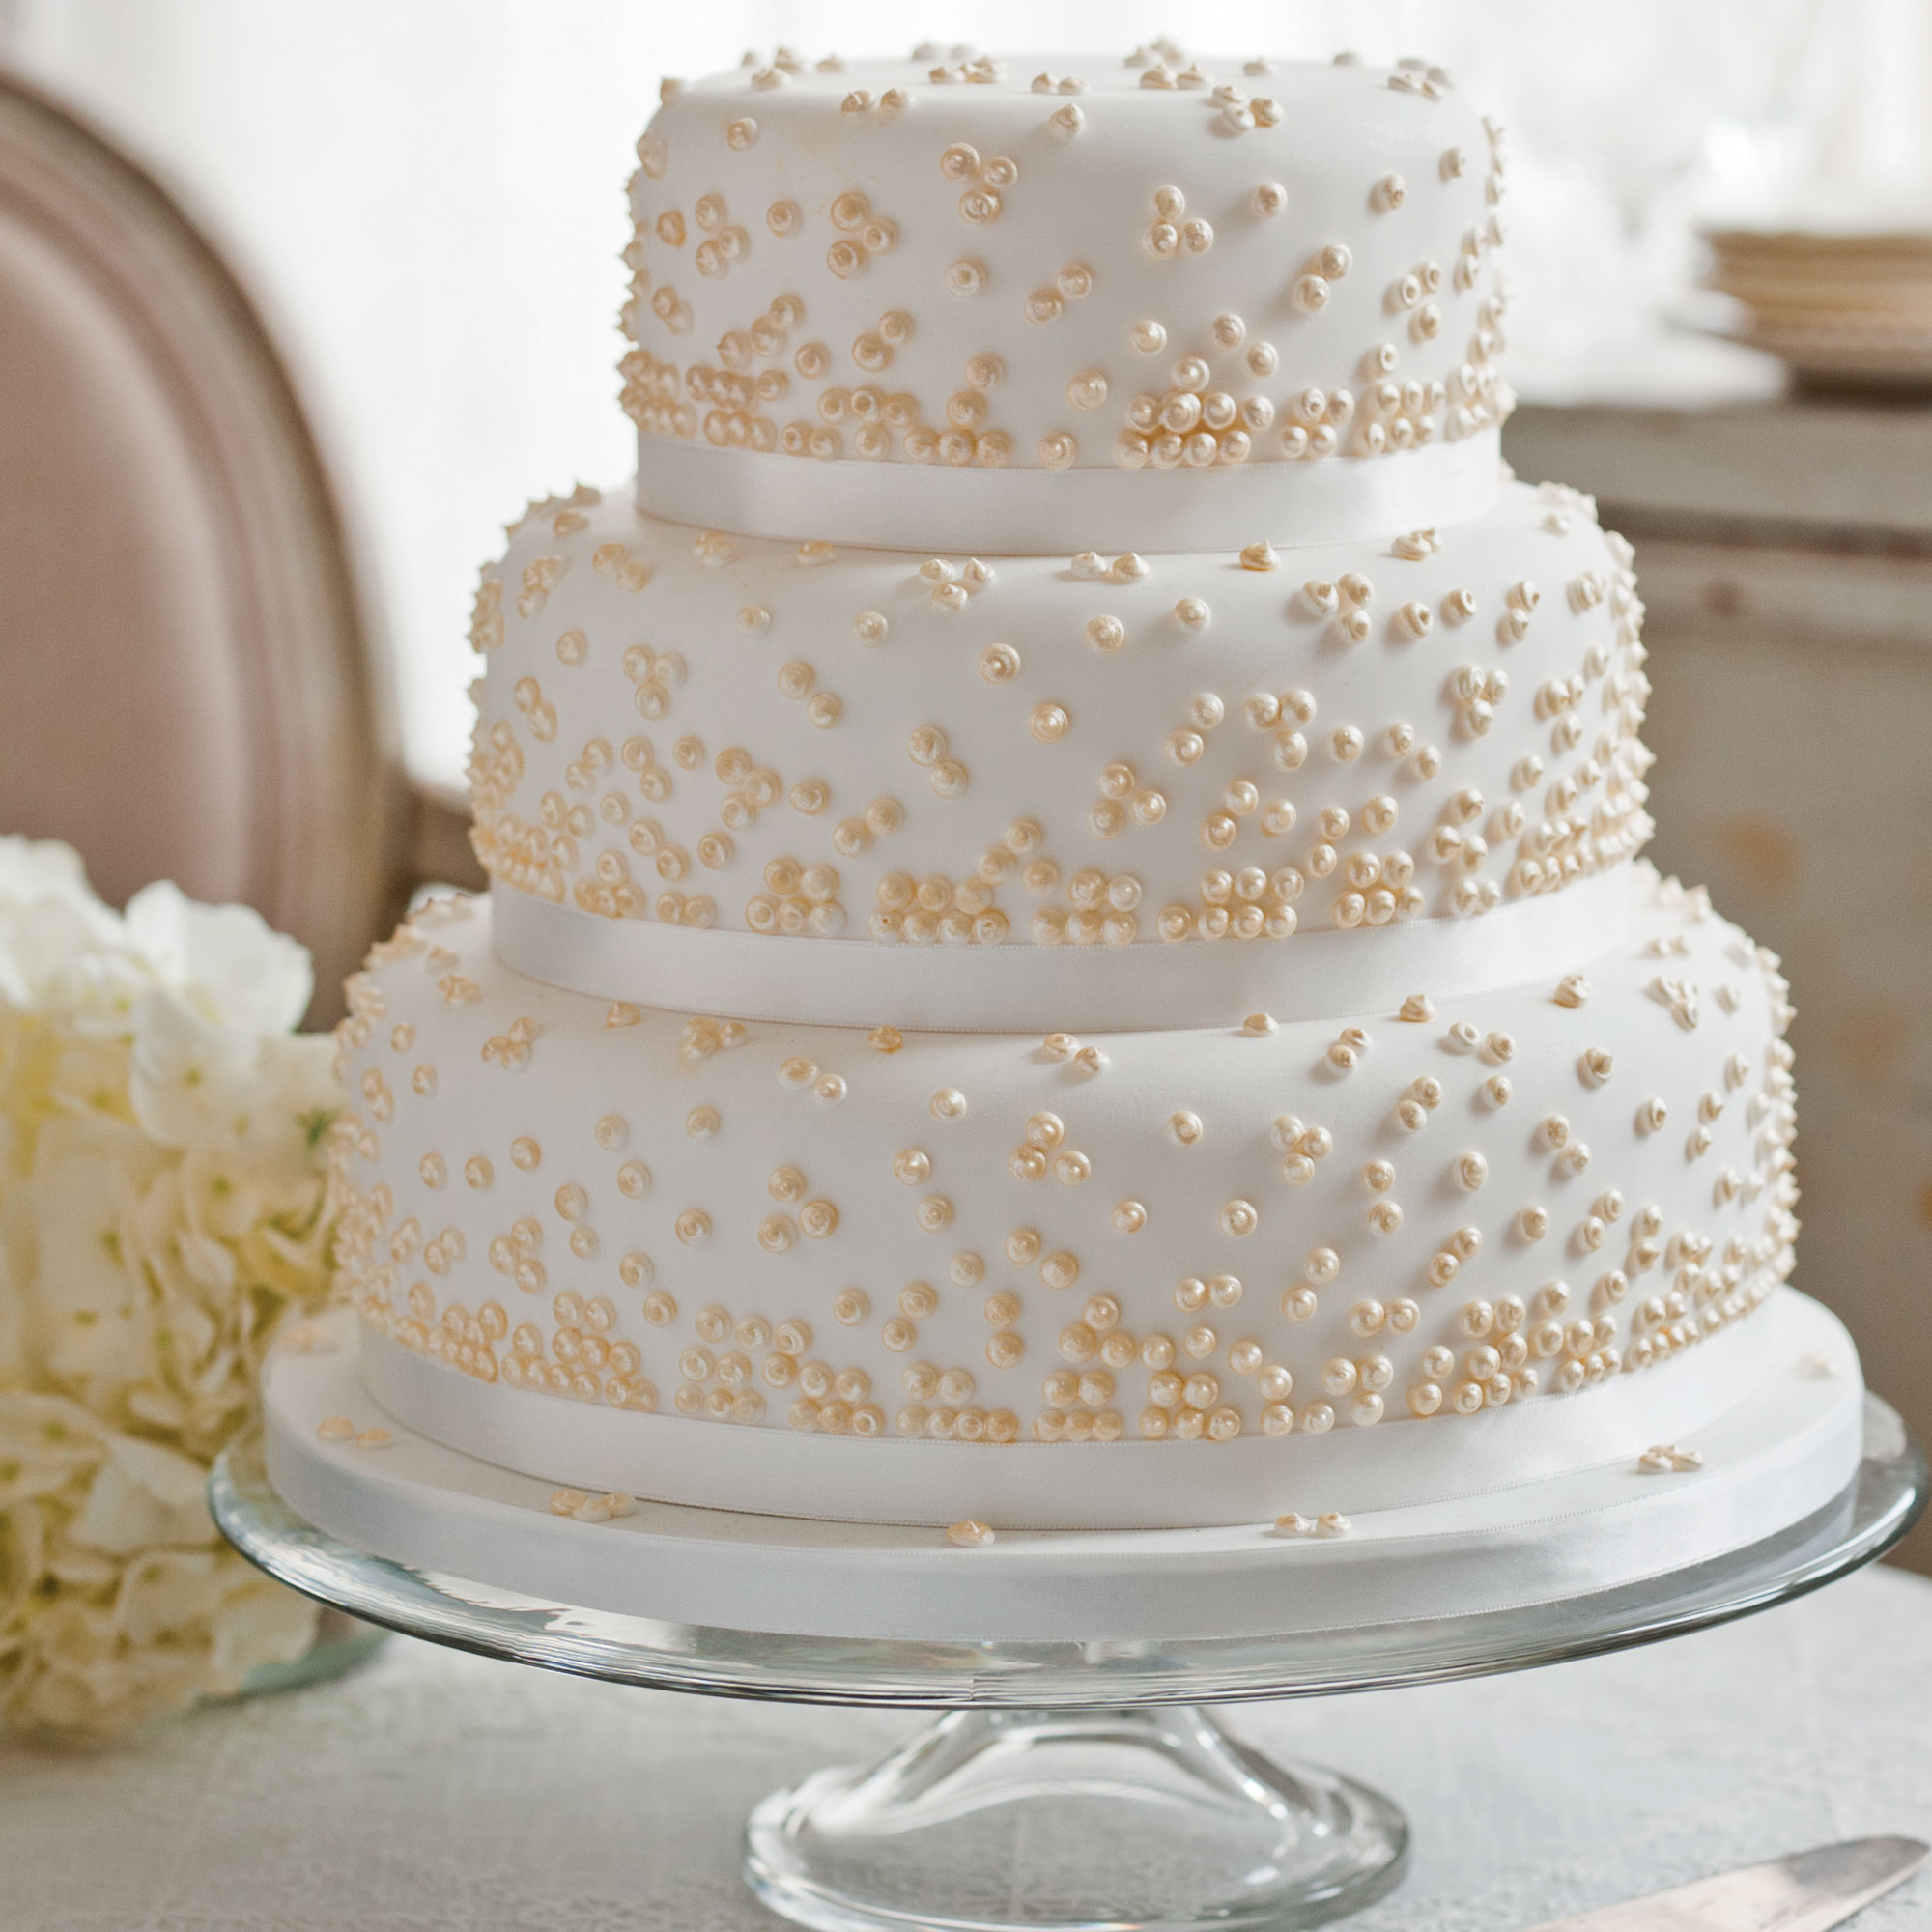 Royal Iced Wedding Cake Designs